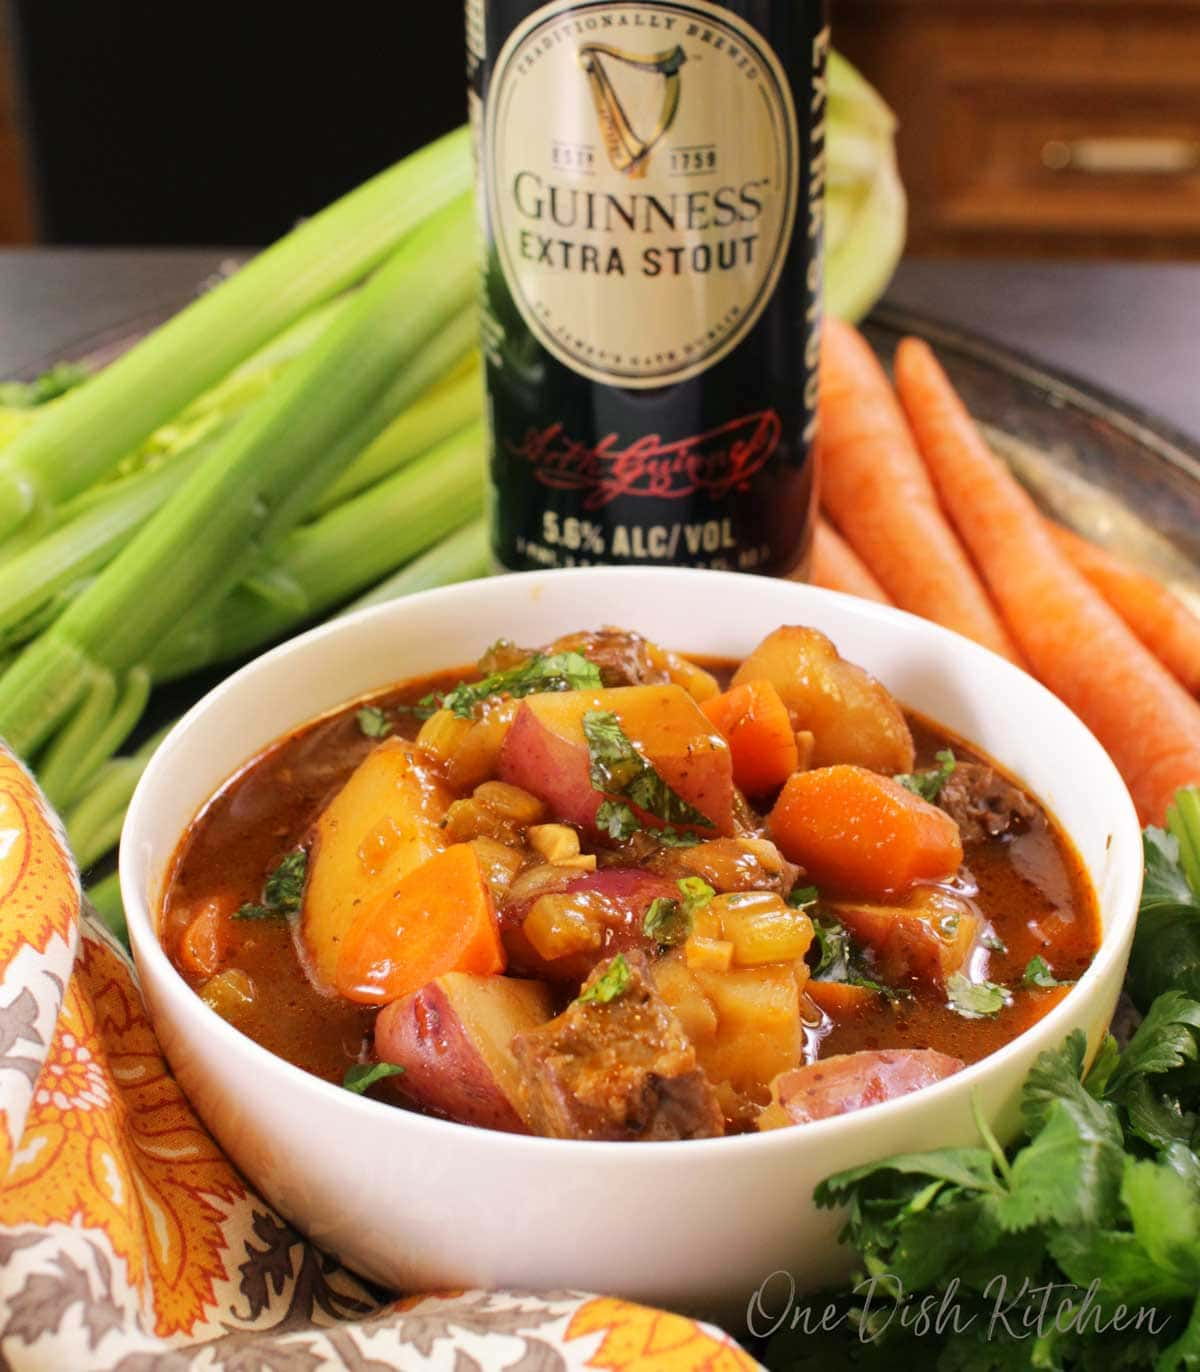 A bowl of irish stew with a can of guinness stout, carrots, and celery in the background.